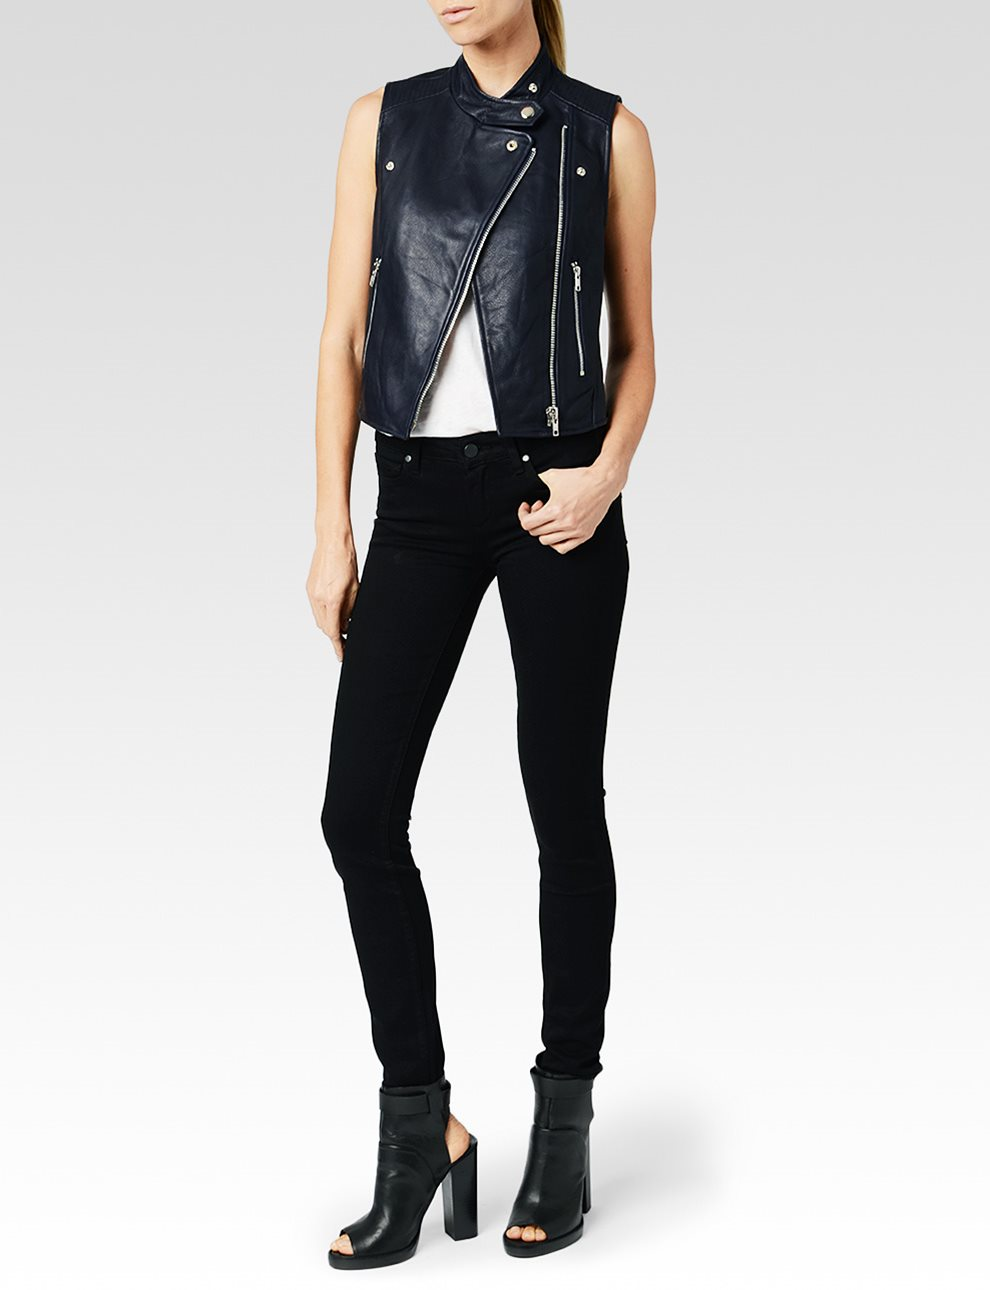 Sia Vest - Dark Ink Blue | Paige USA